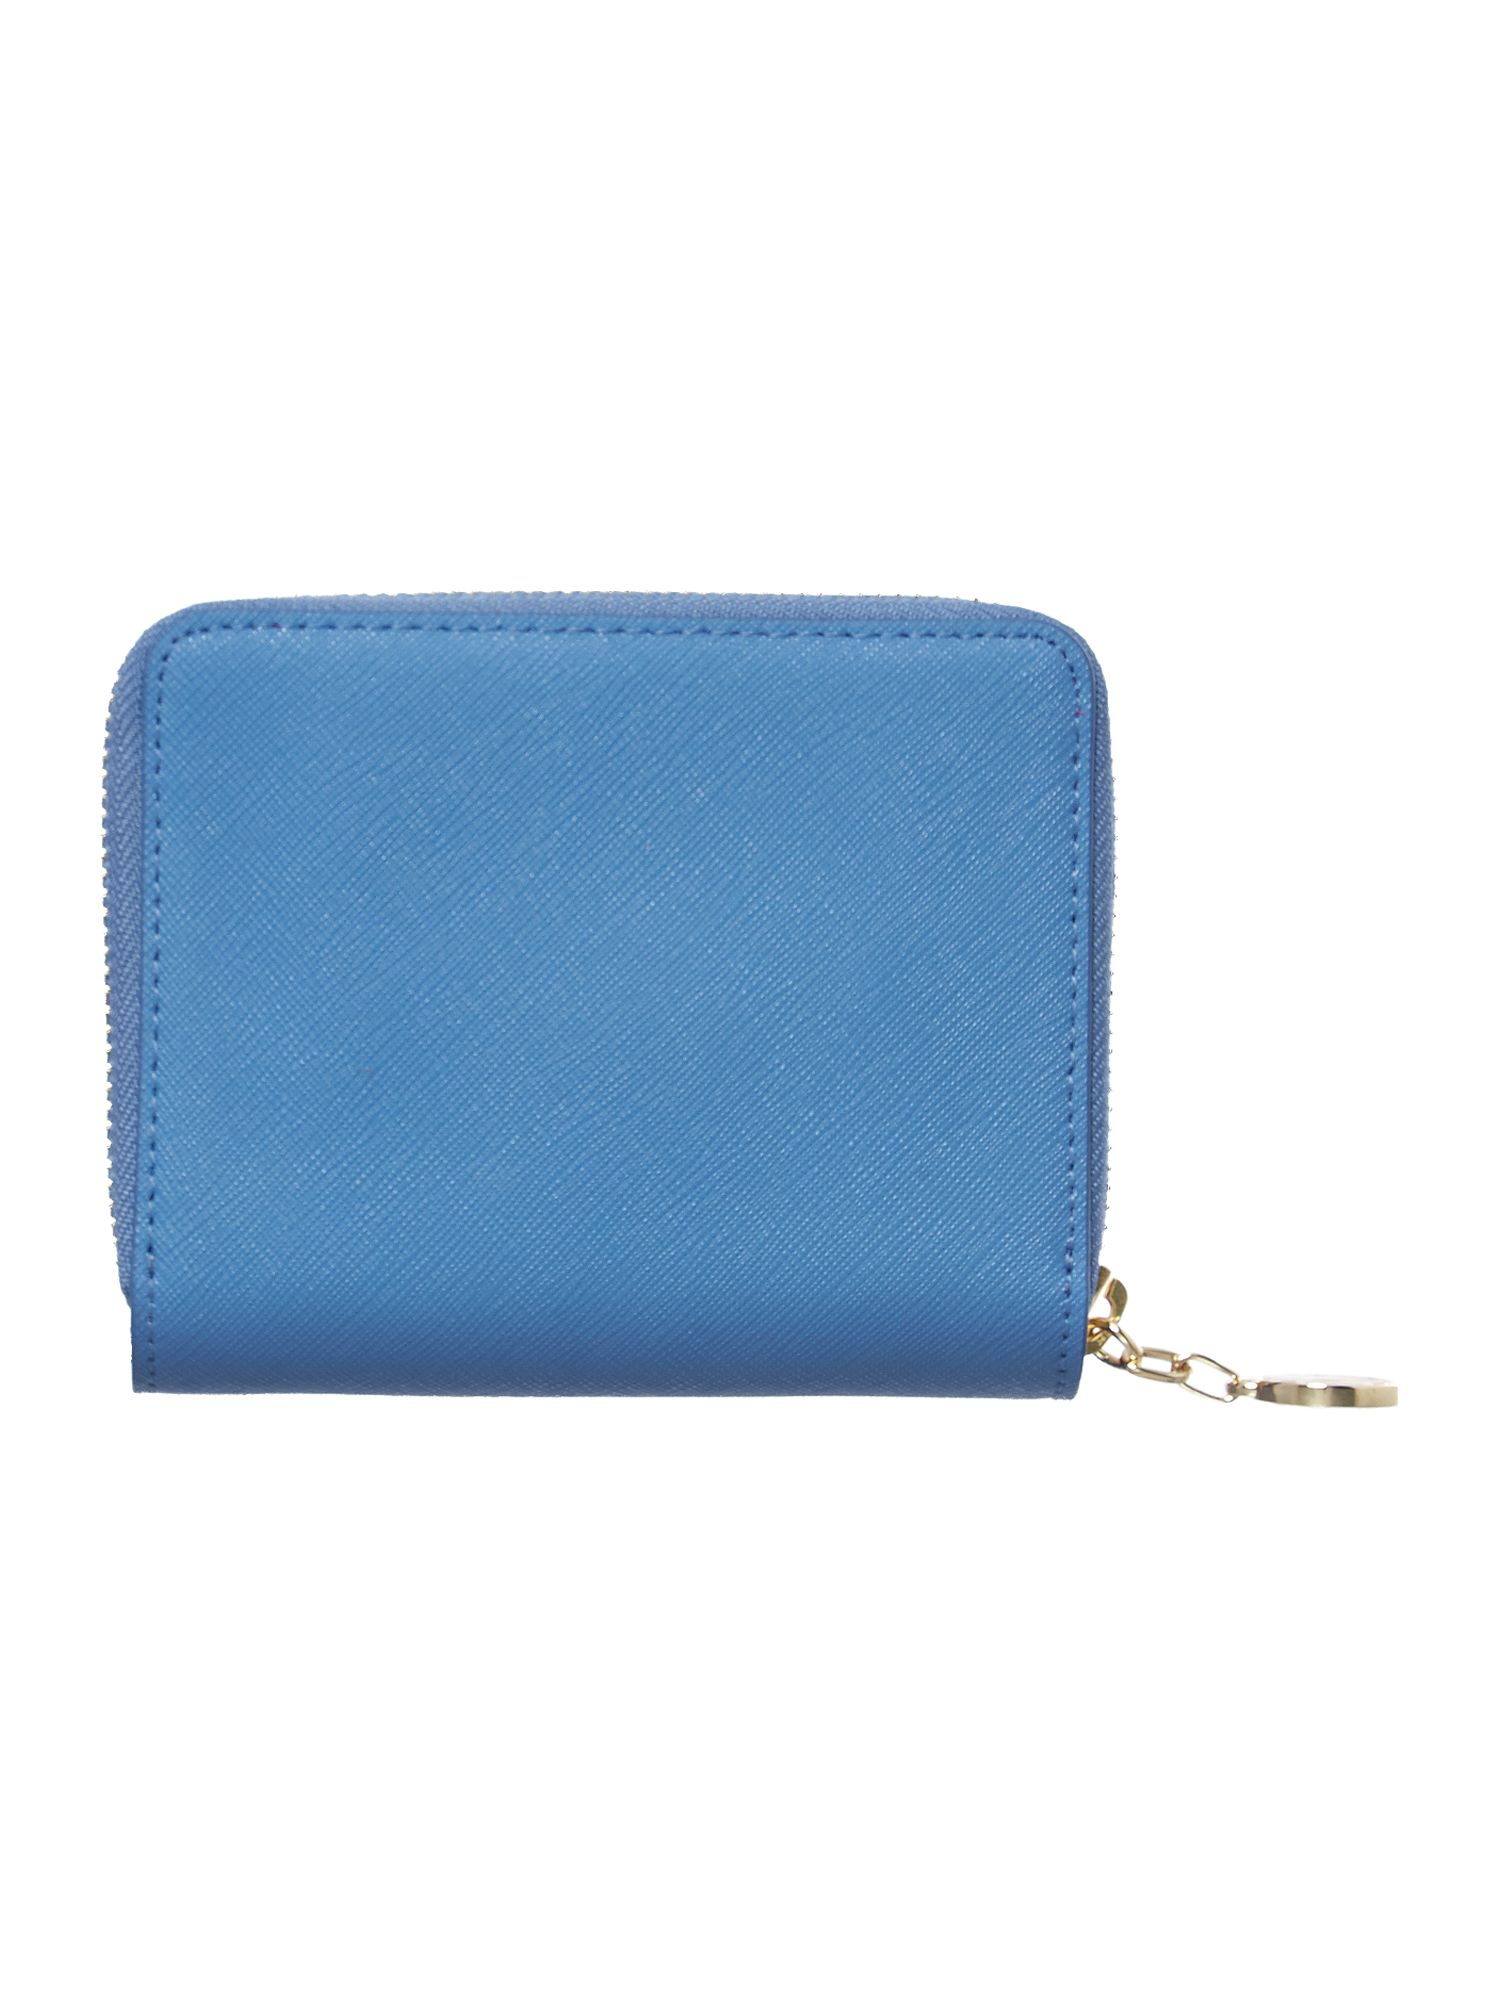 Saffiano blue small zip around purse